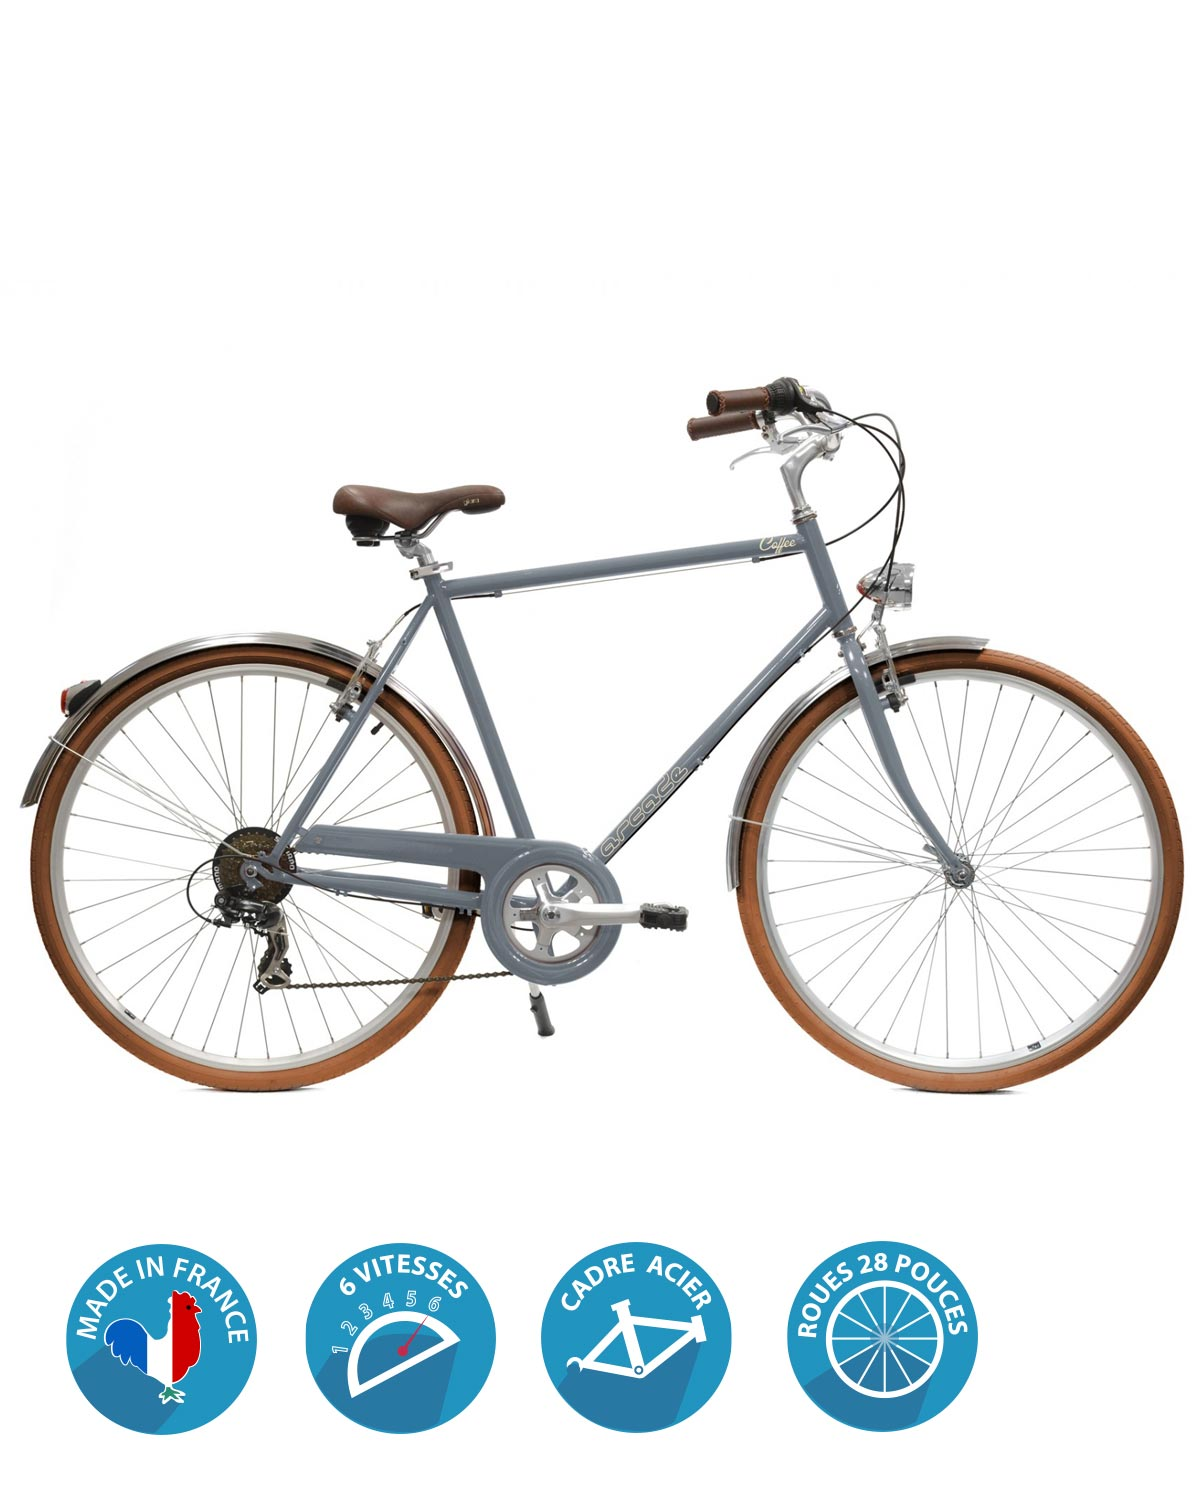 vélo homme coffee S6 arcade cycles